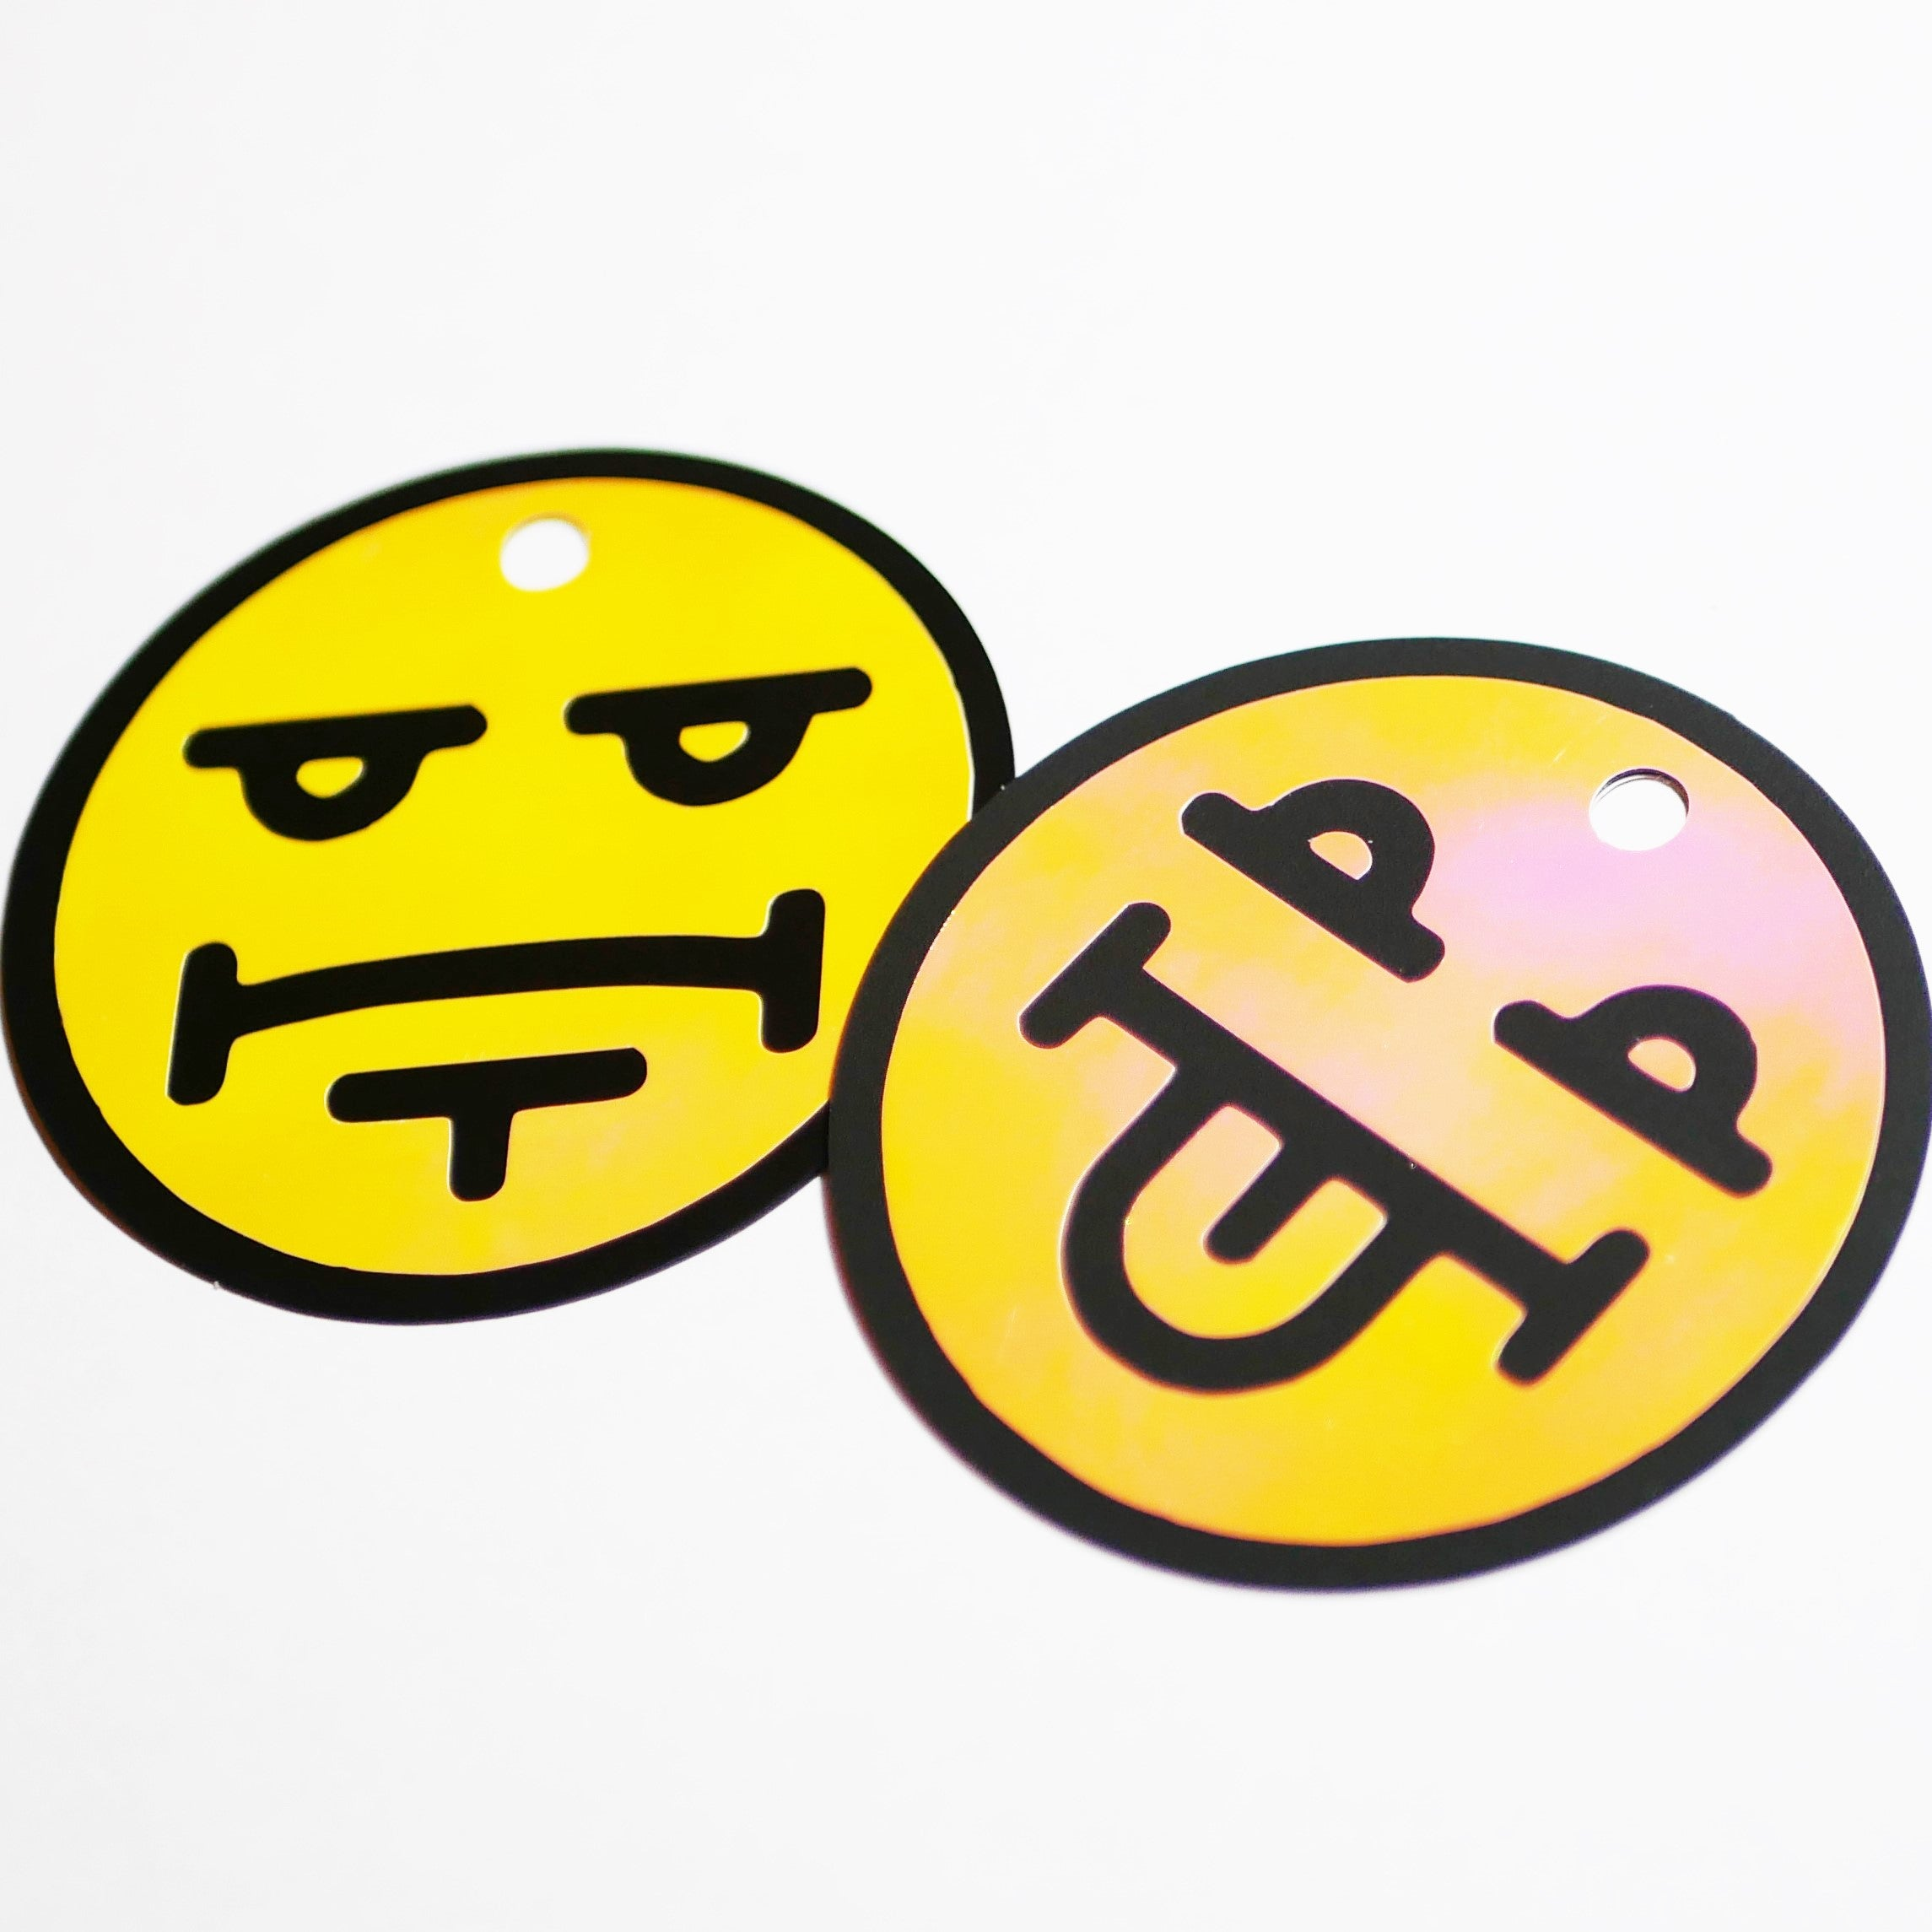 "Limited Edition 2.5x2.5"" Double-sided Emoji Holographic Reflector"